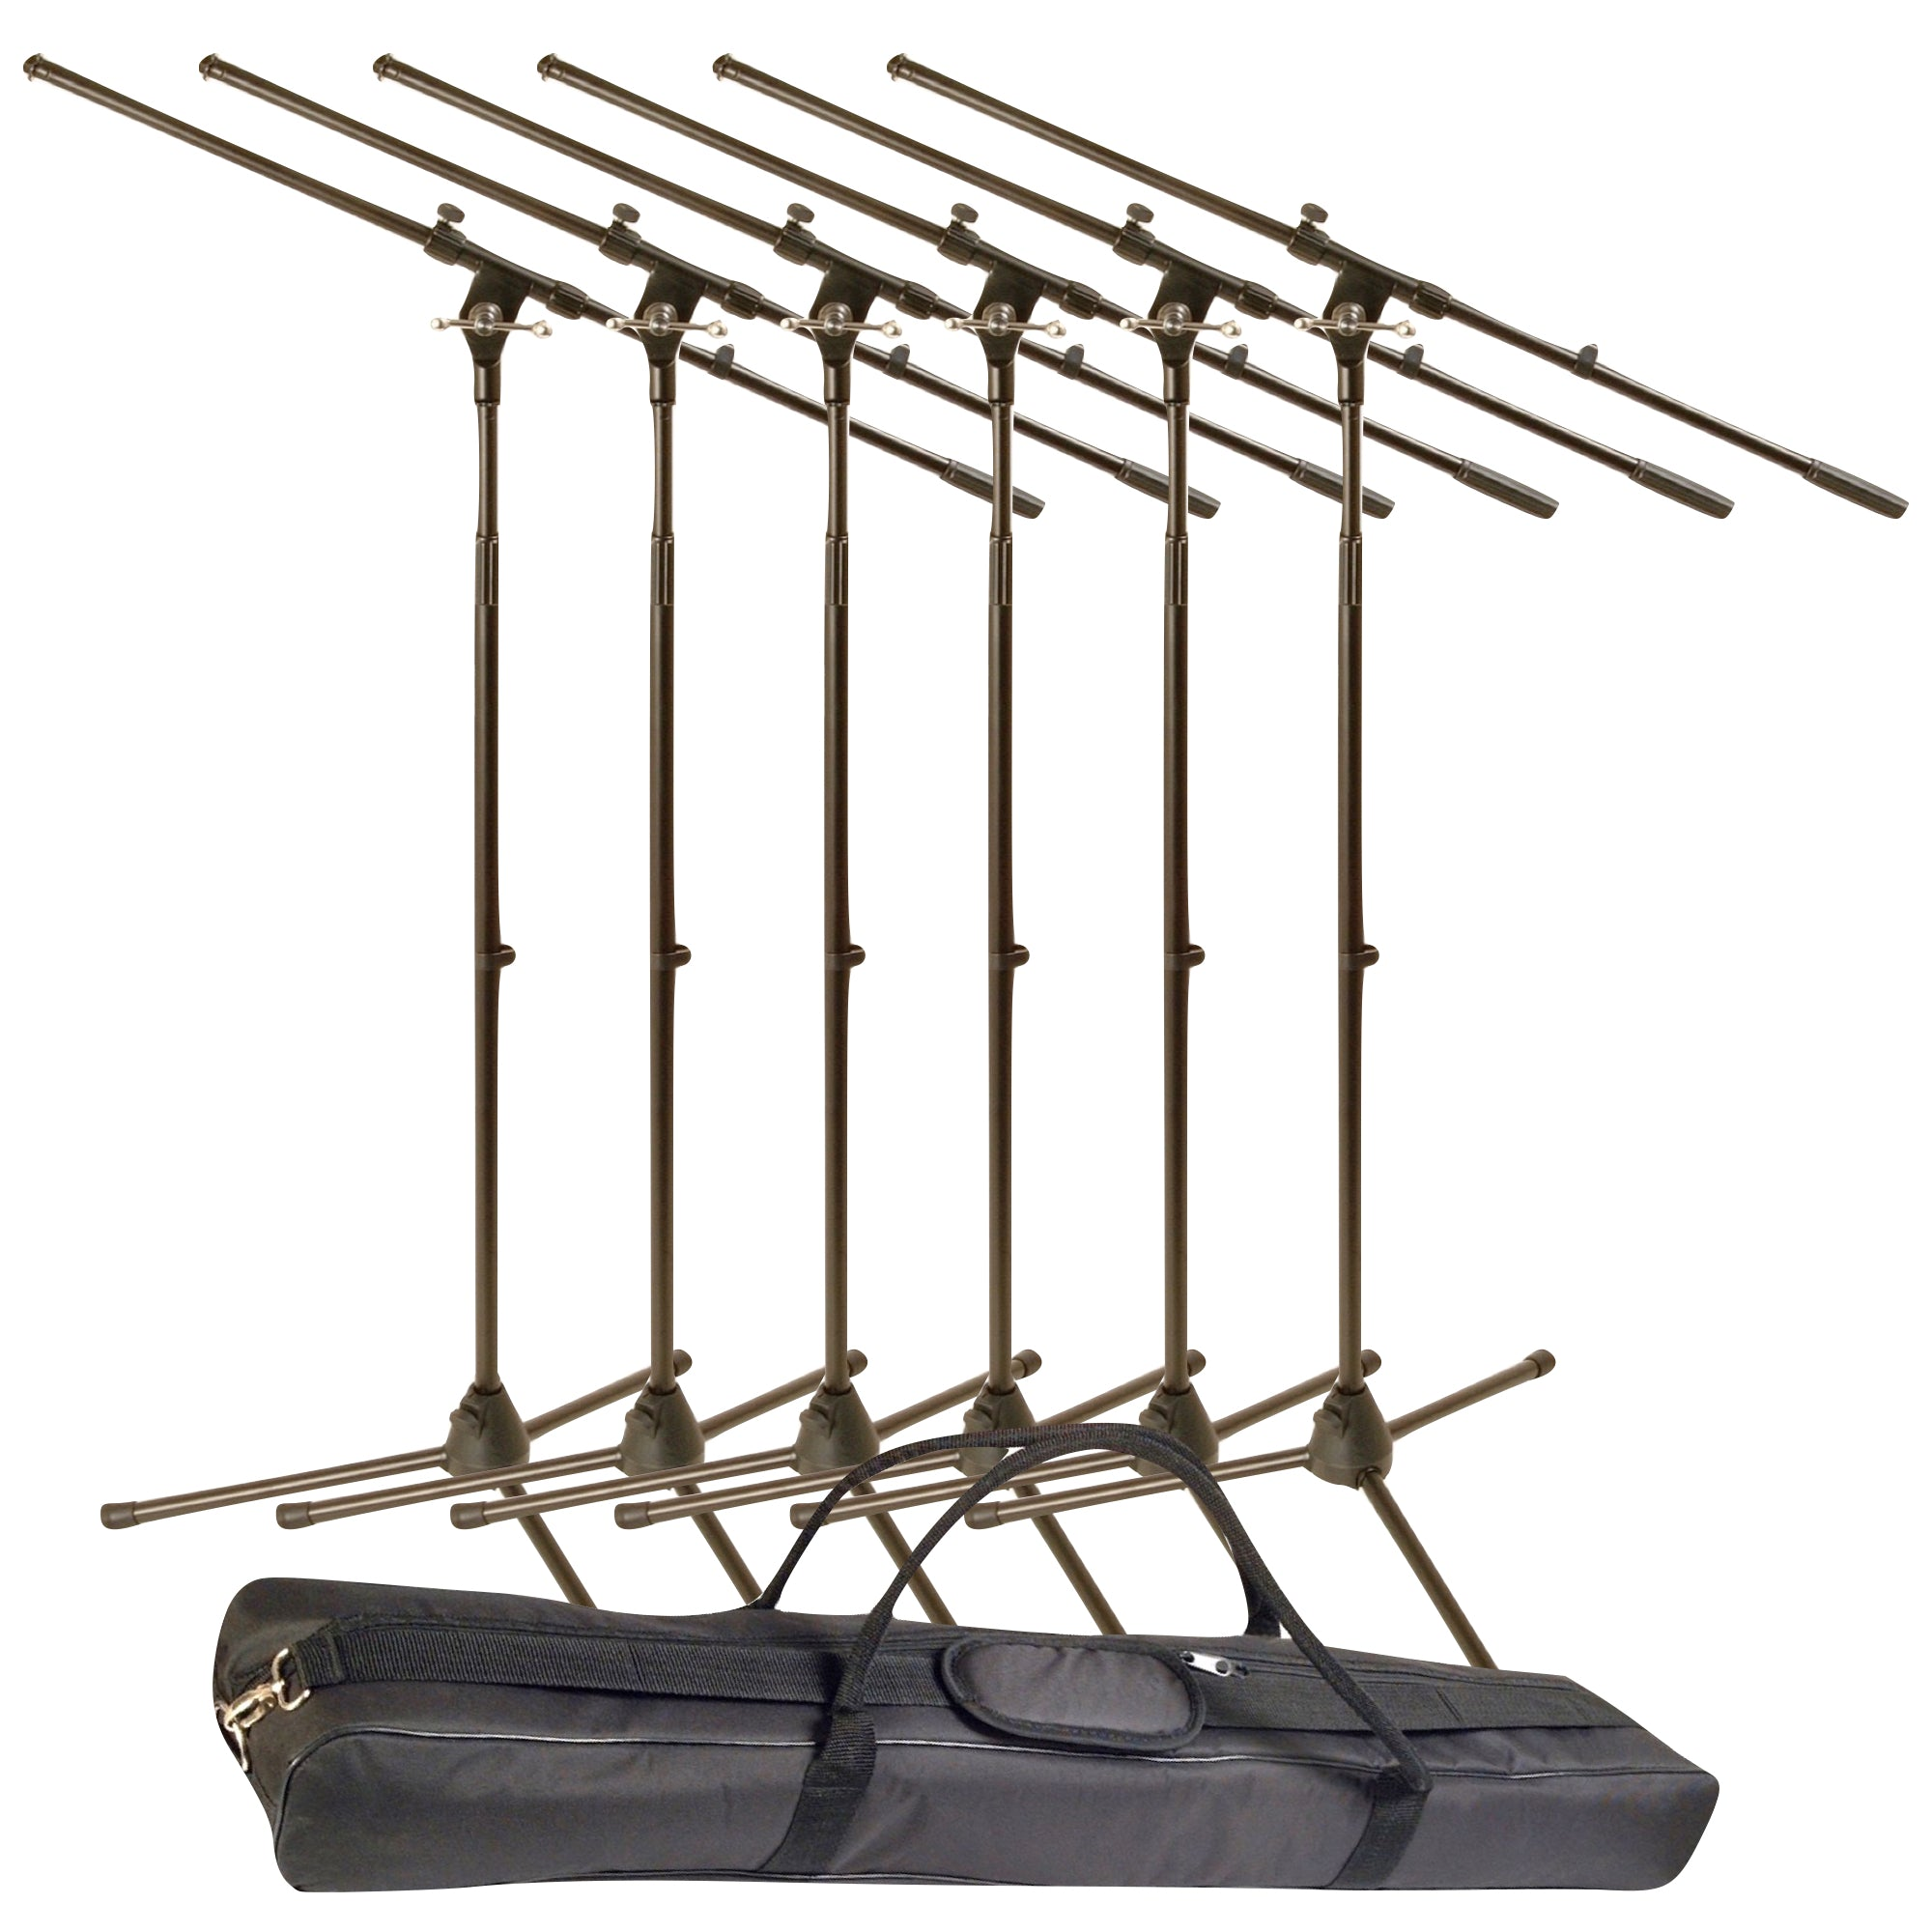 World Tour MSP600 Microphone Stand Pack (with One Gig Bag), 6-Pack